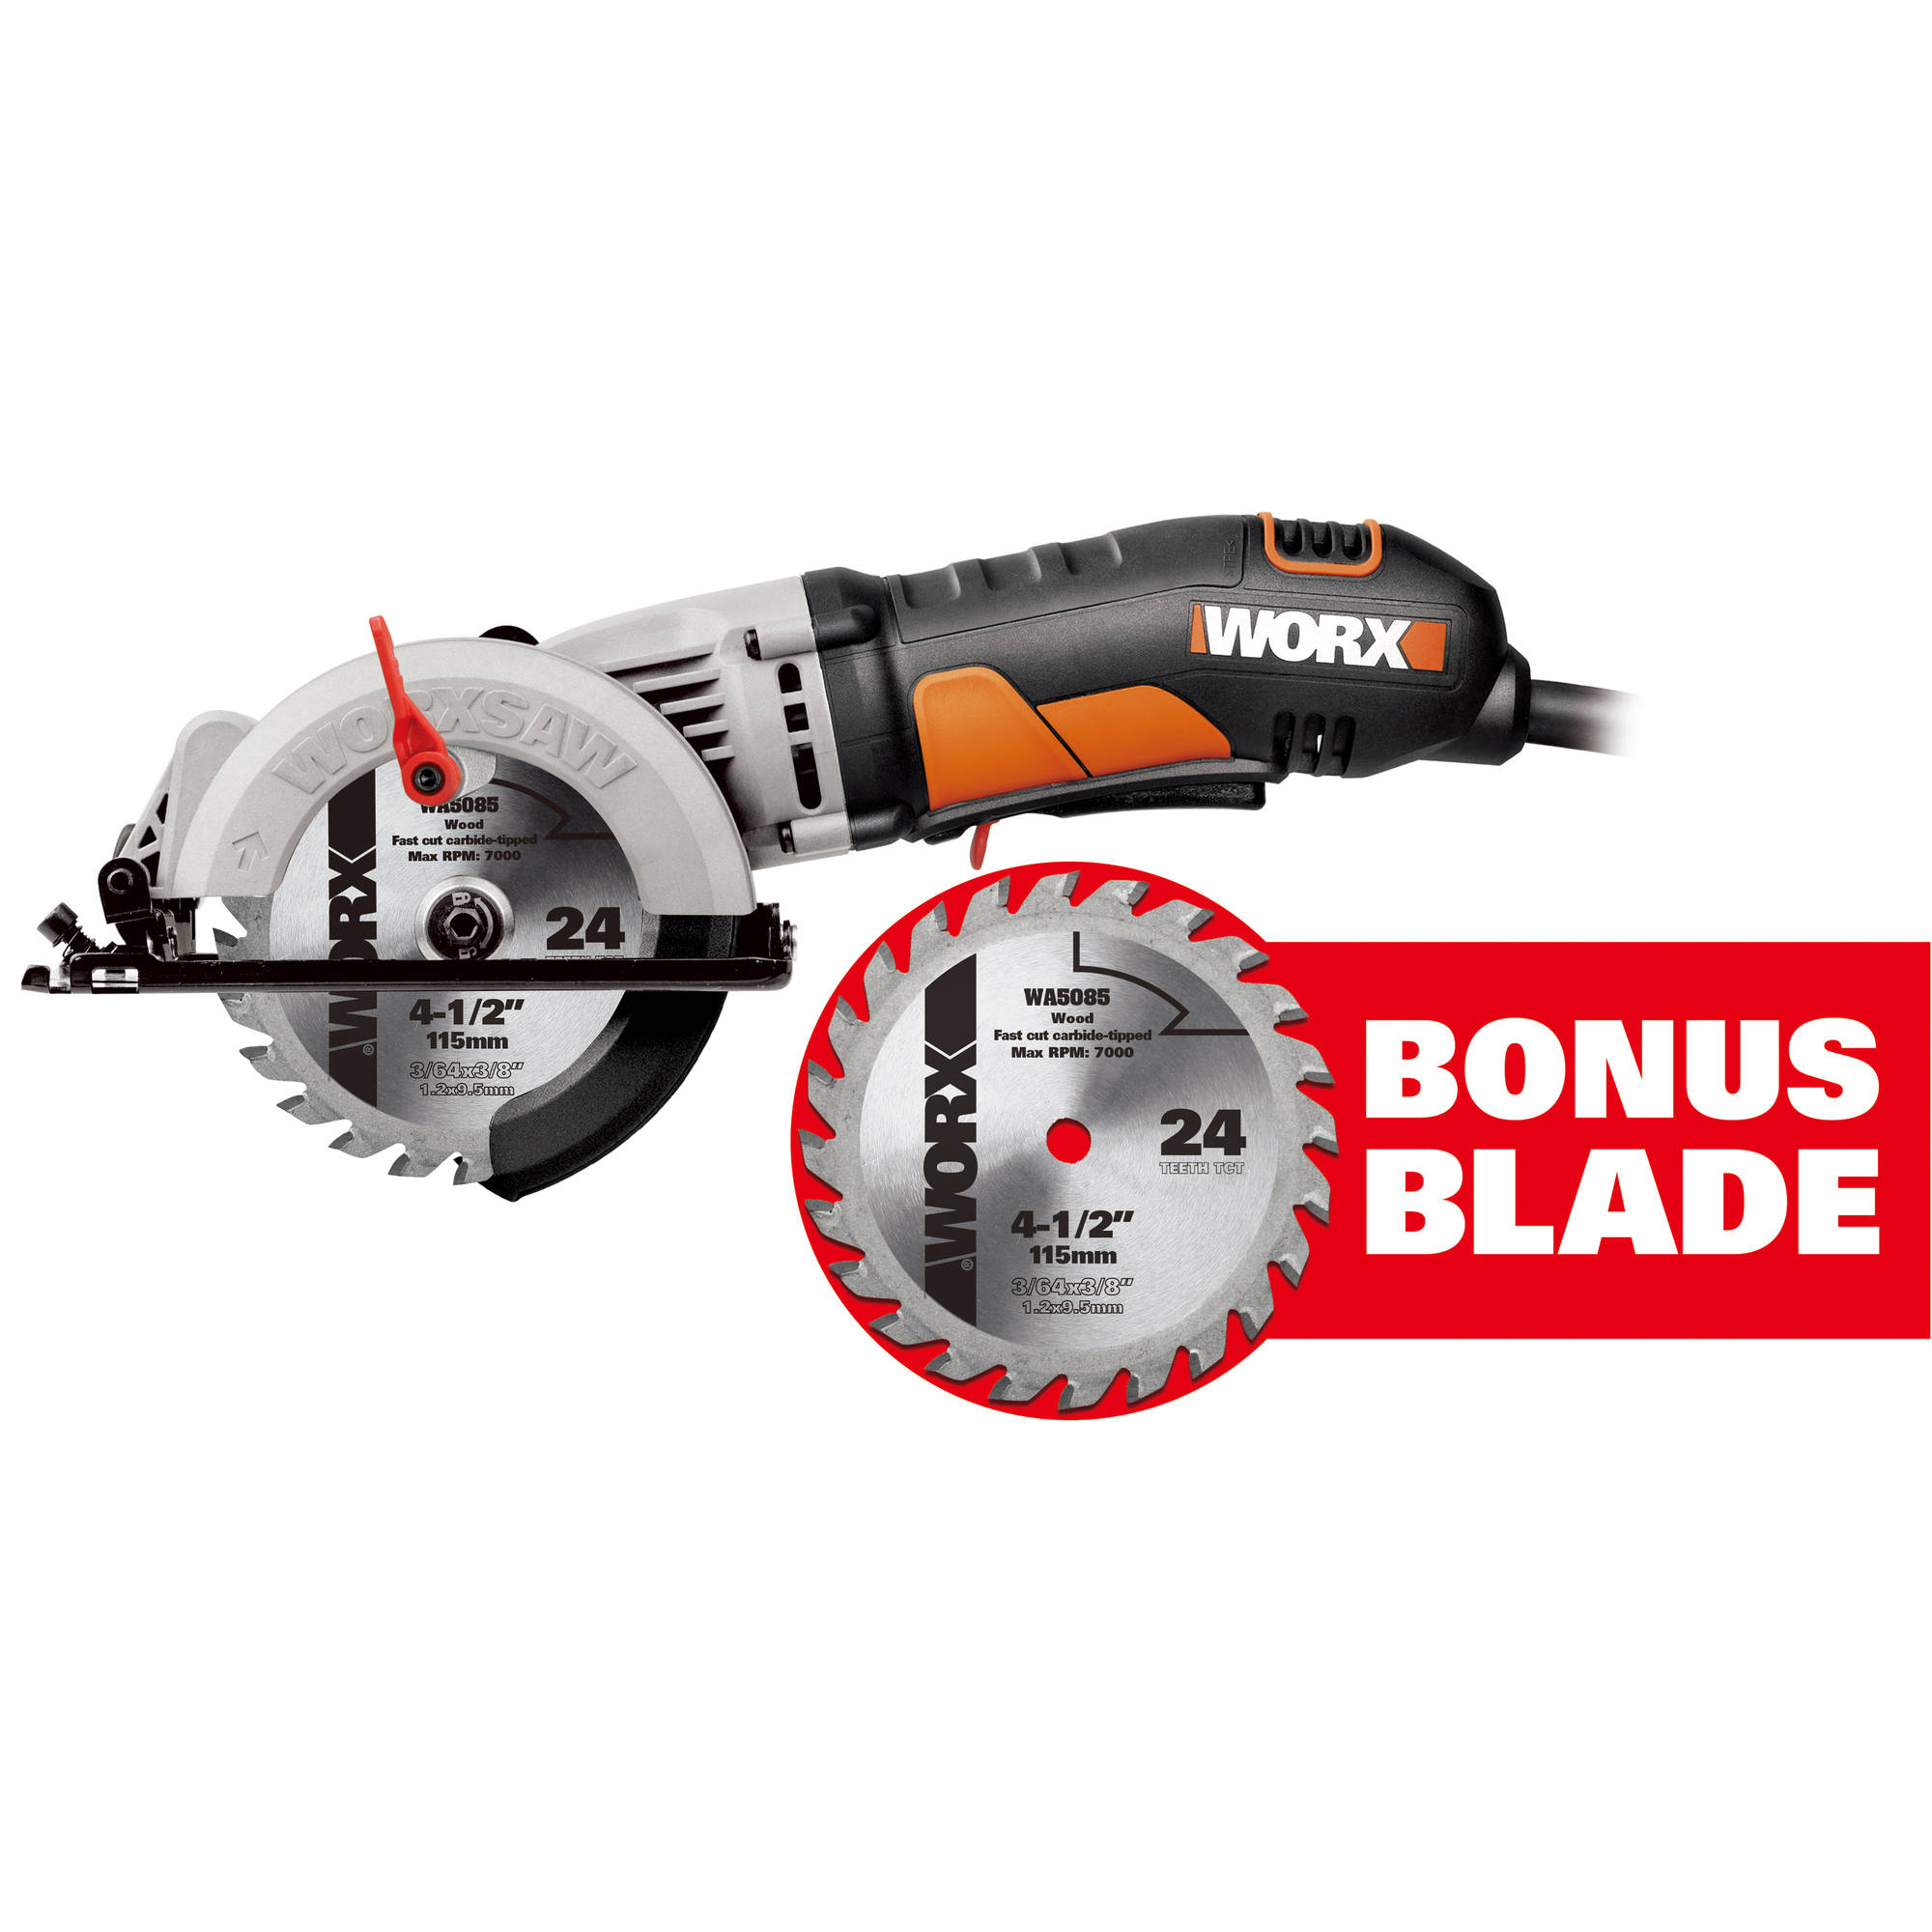 Best Circular Saws - WORX 4-1/2-Inch Compact Circular Saw With Bonus Blade Review